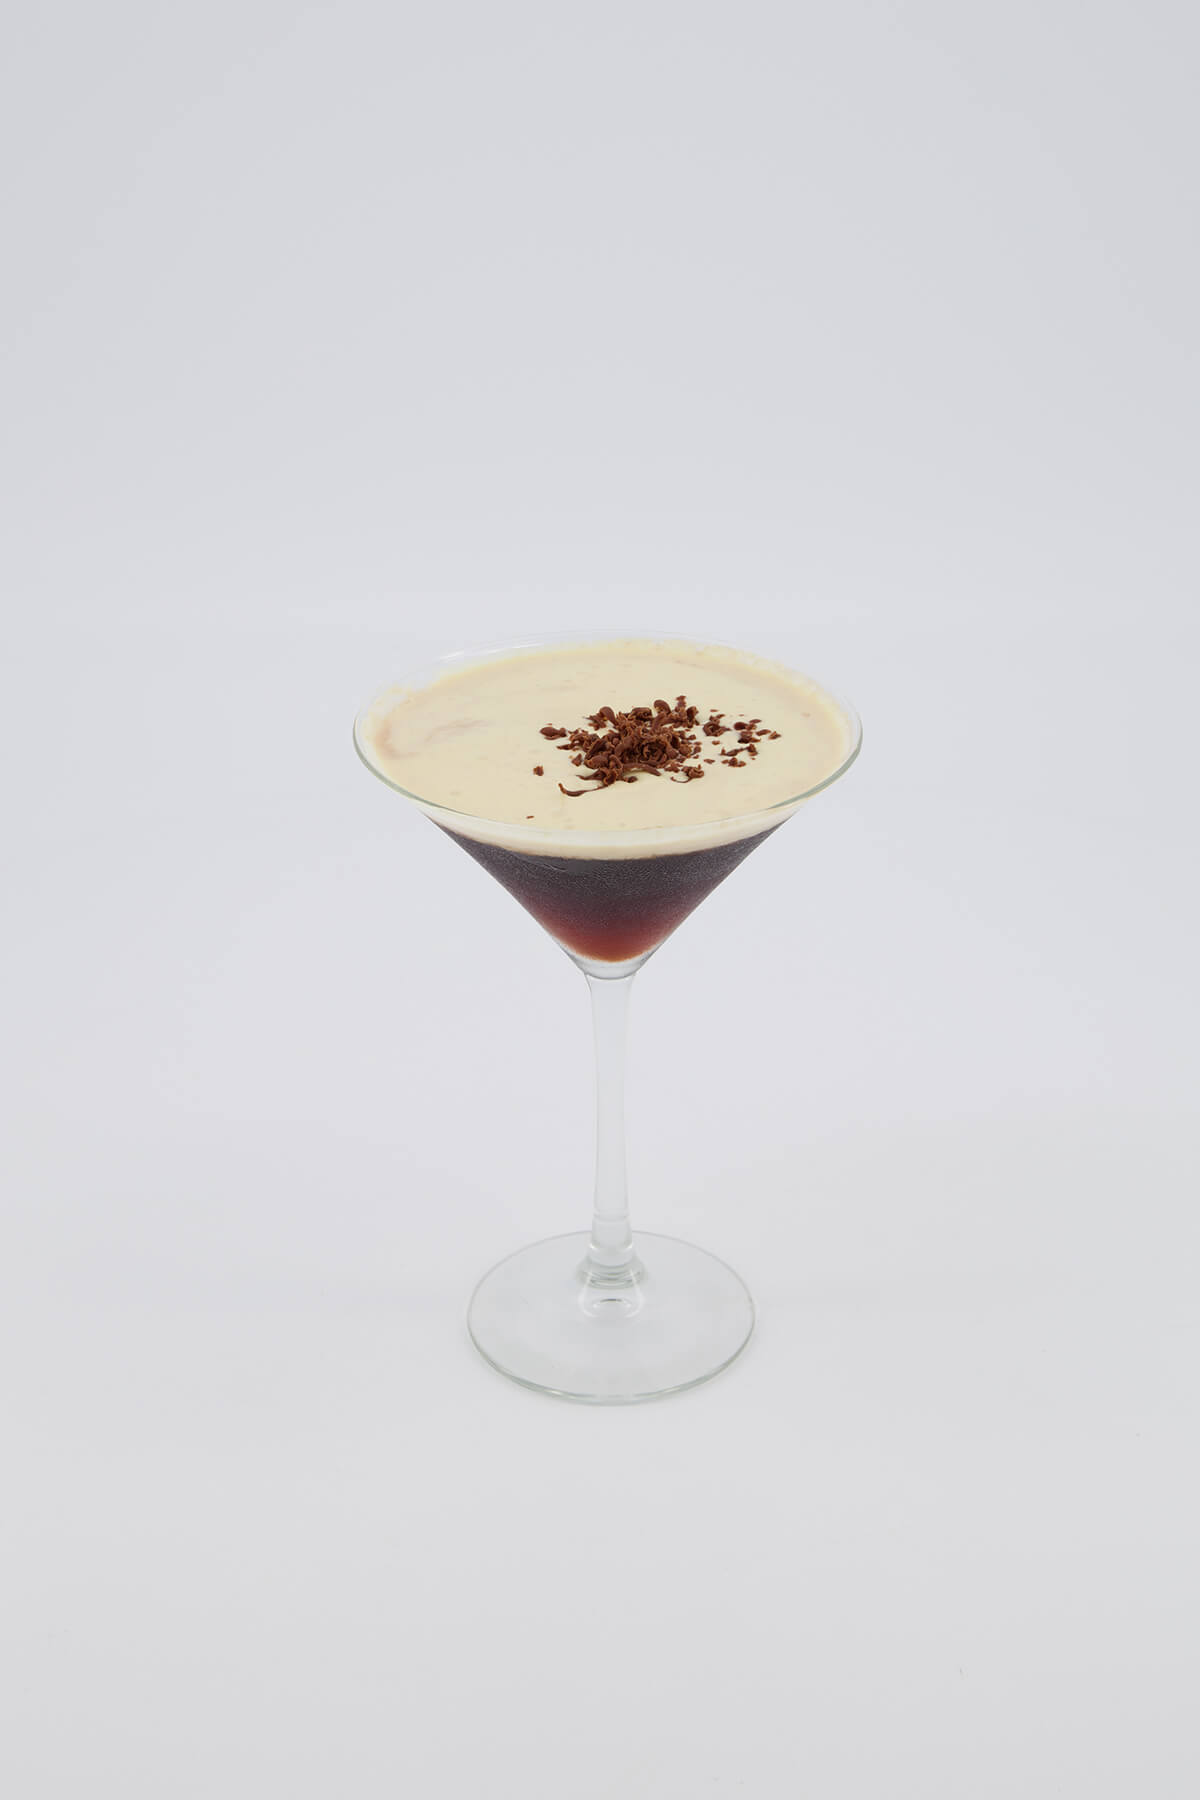 E-commerce photography of cocktails in studio